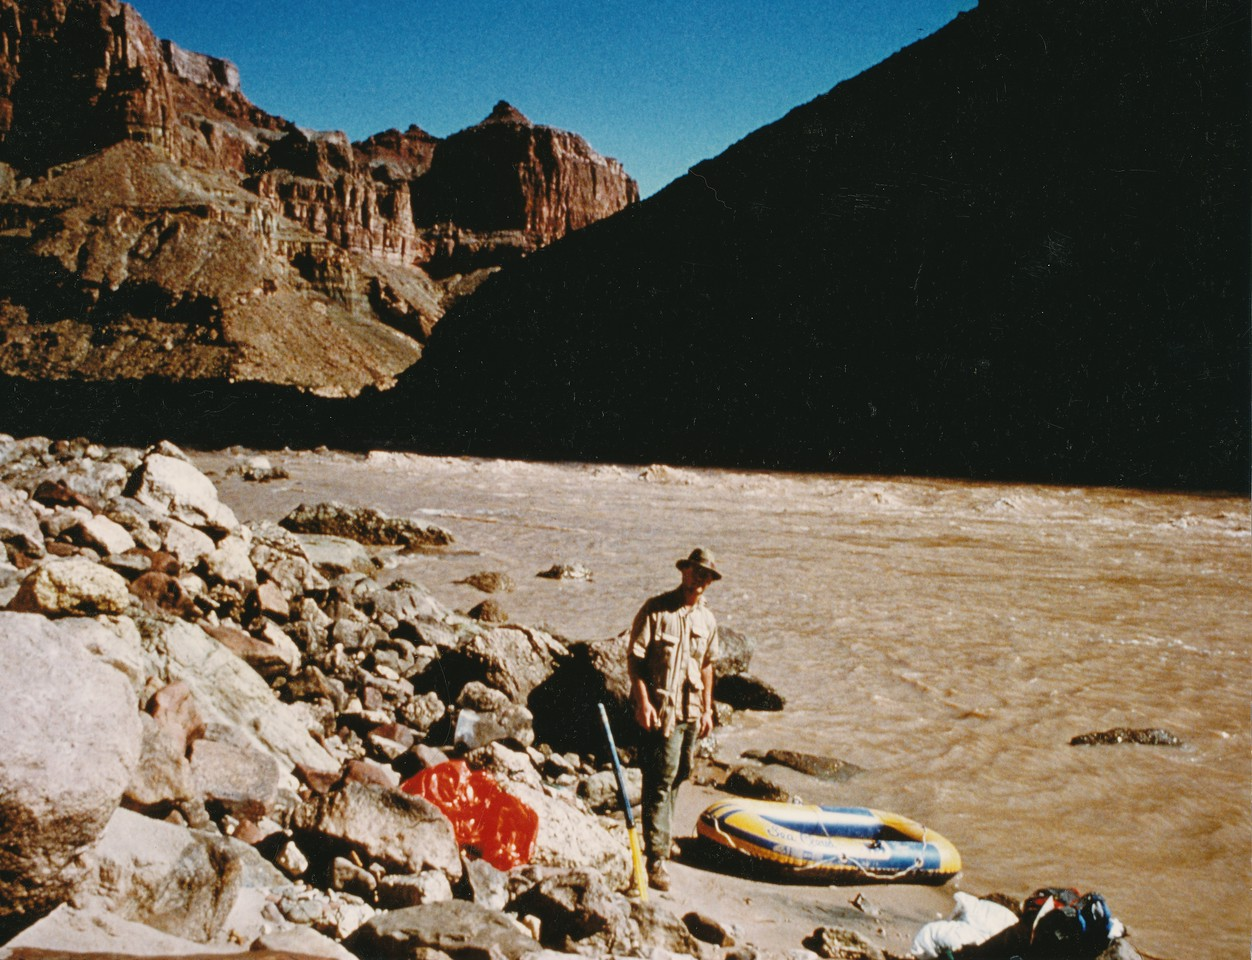 On the West/Chuar Butte side of the river after a successful crossing during my October 1990 trip. <br /> <br /> Crossing the Colorado River is without question the most dangerous part of the journey. The water temperture maintains a constant of 45-49 degrees year round. The currents are very strong and deadly whirlpools are common. In the four hike/raft trips I have made, operating on the river has been very challenging.